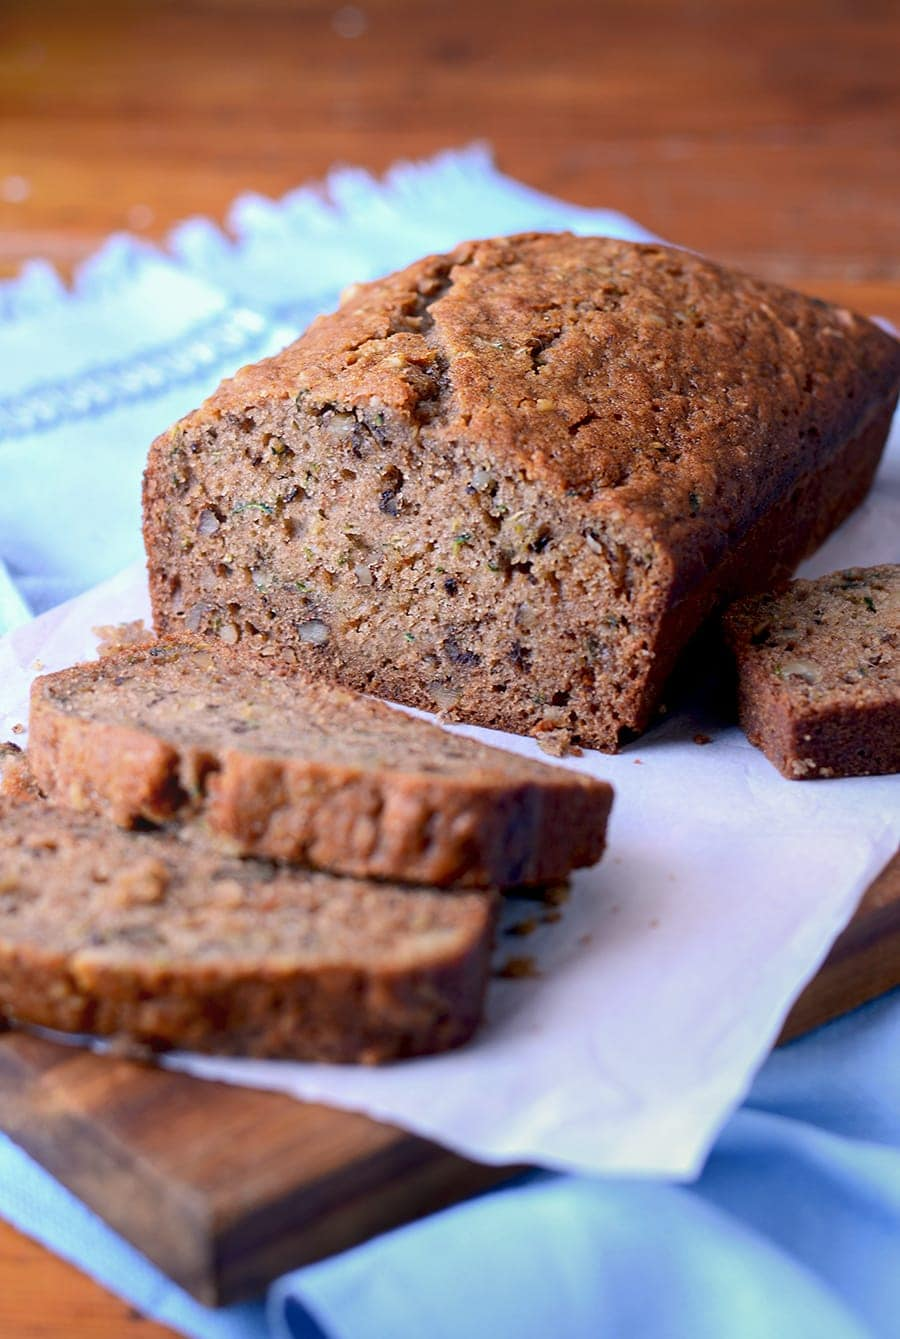 This easy recipe for Zucchini Bread has a tender crumb and loads of home baked flavor. It tastes just like mom pulled it out of the oven!